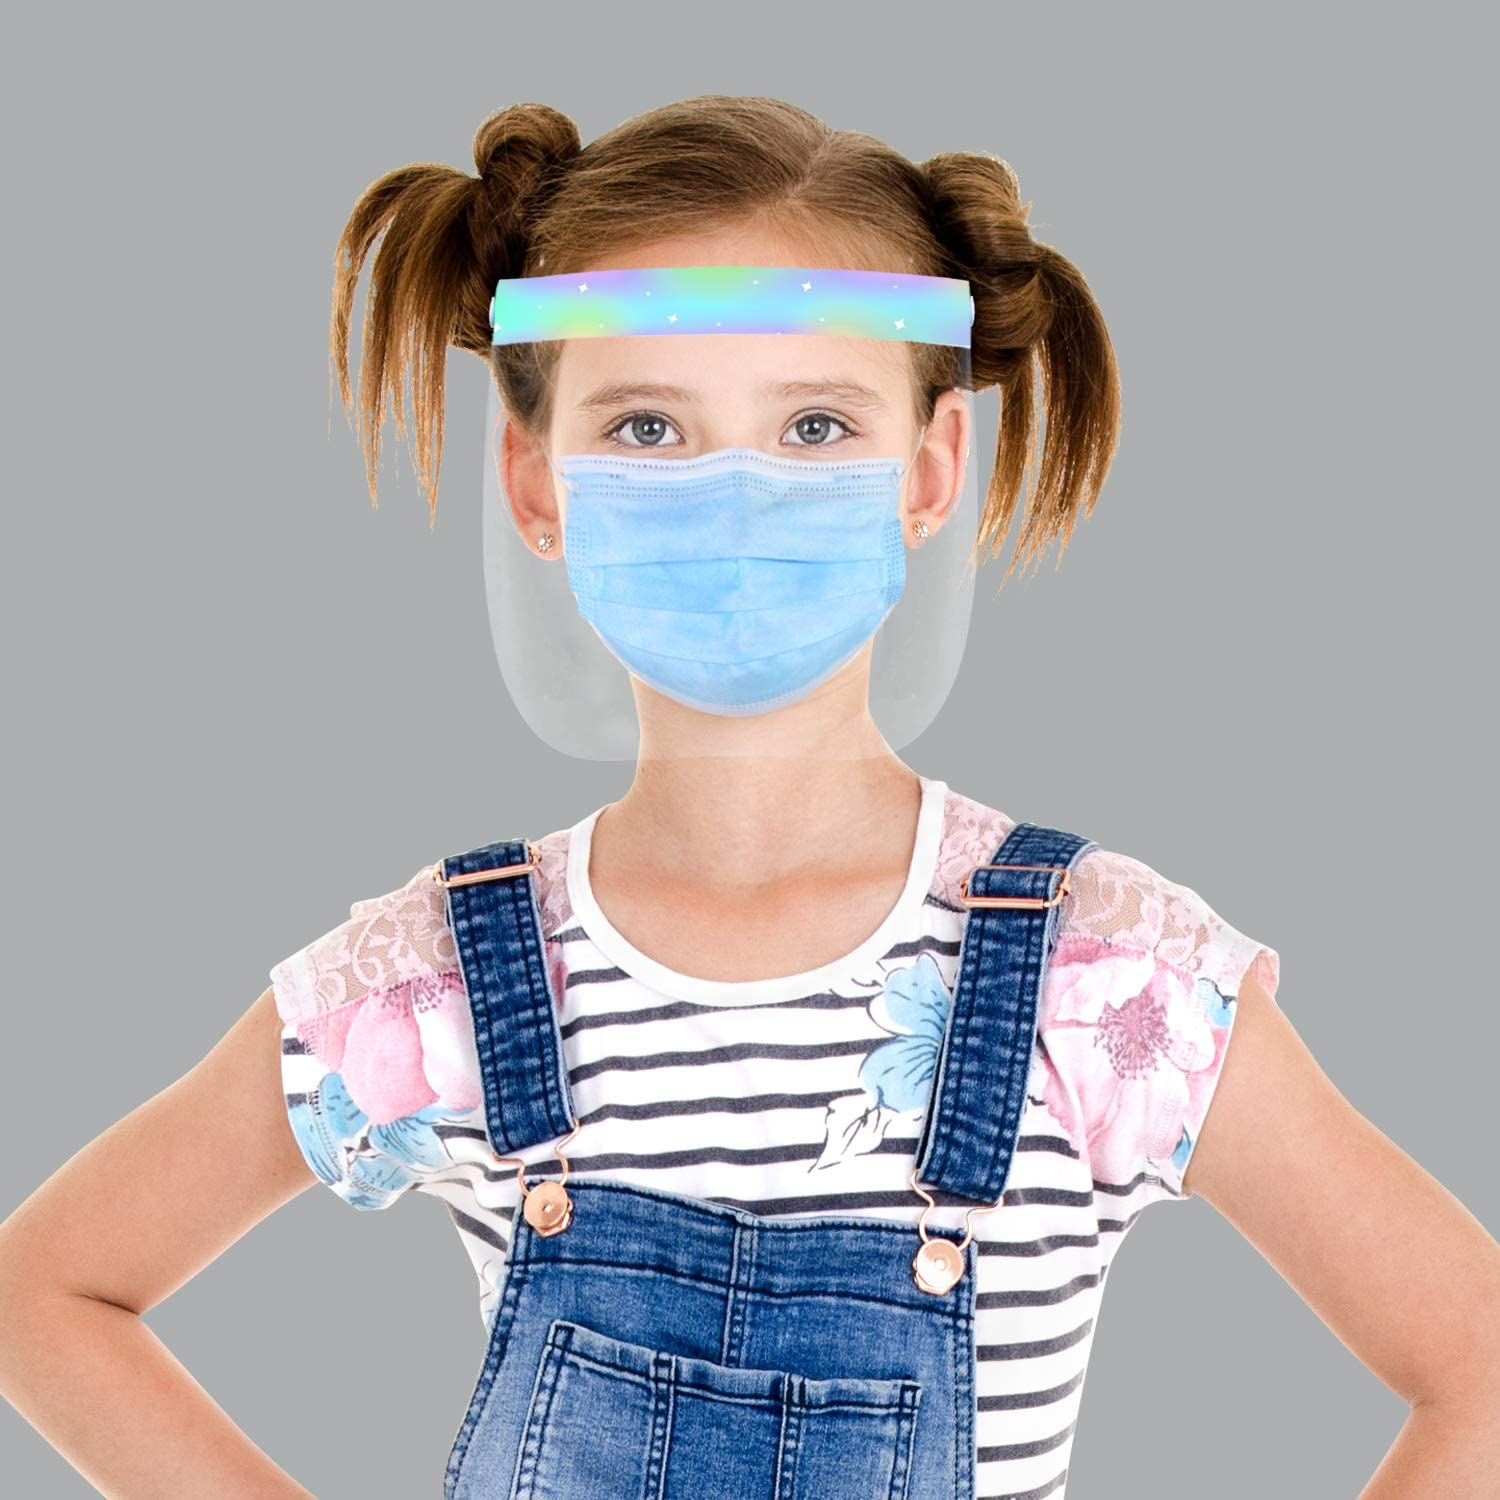 ZKQ Children Dust Facial Decoration Printed Reusable Breathable Face Protective Product Half Shields Dust Face Anti Pollution Covers Outdoor Sun protection 2020 Latest